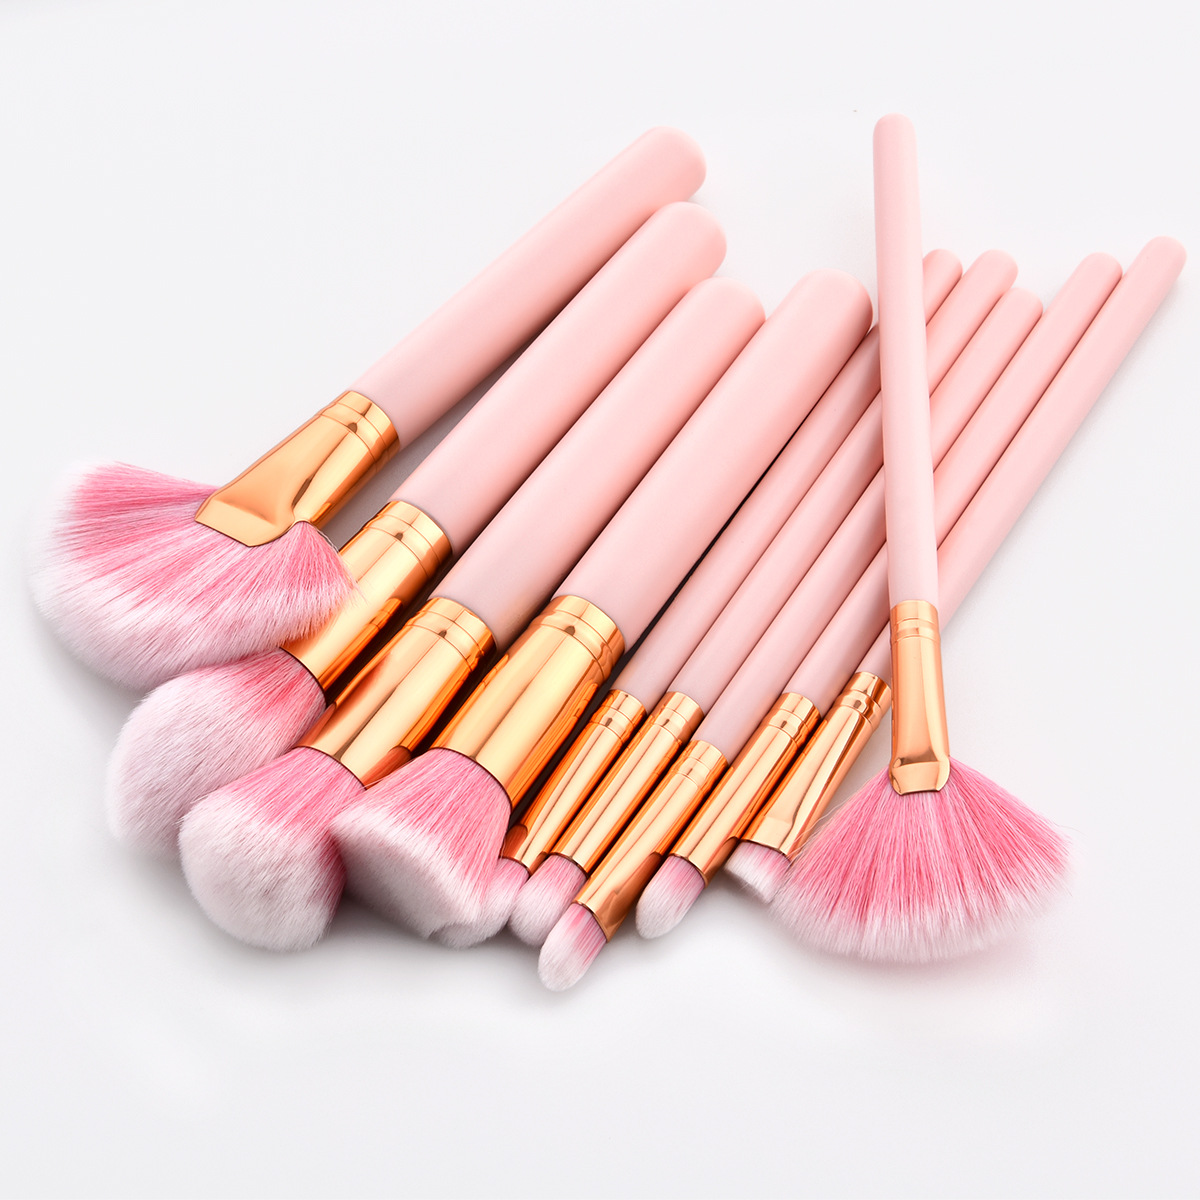 wholesale electroplating plastic handle 5pcs beauty brush makeup set with star tail